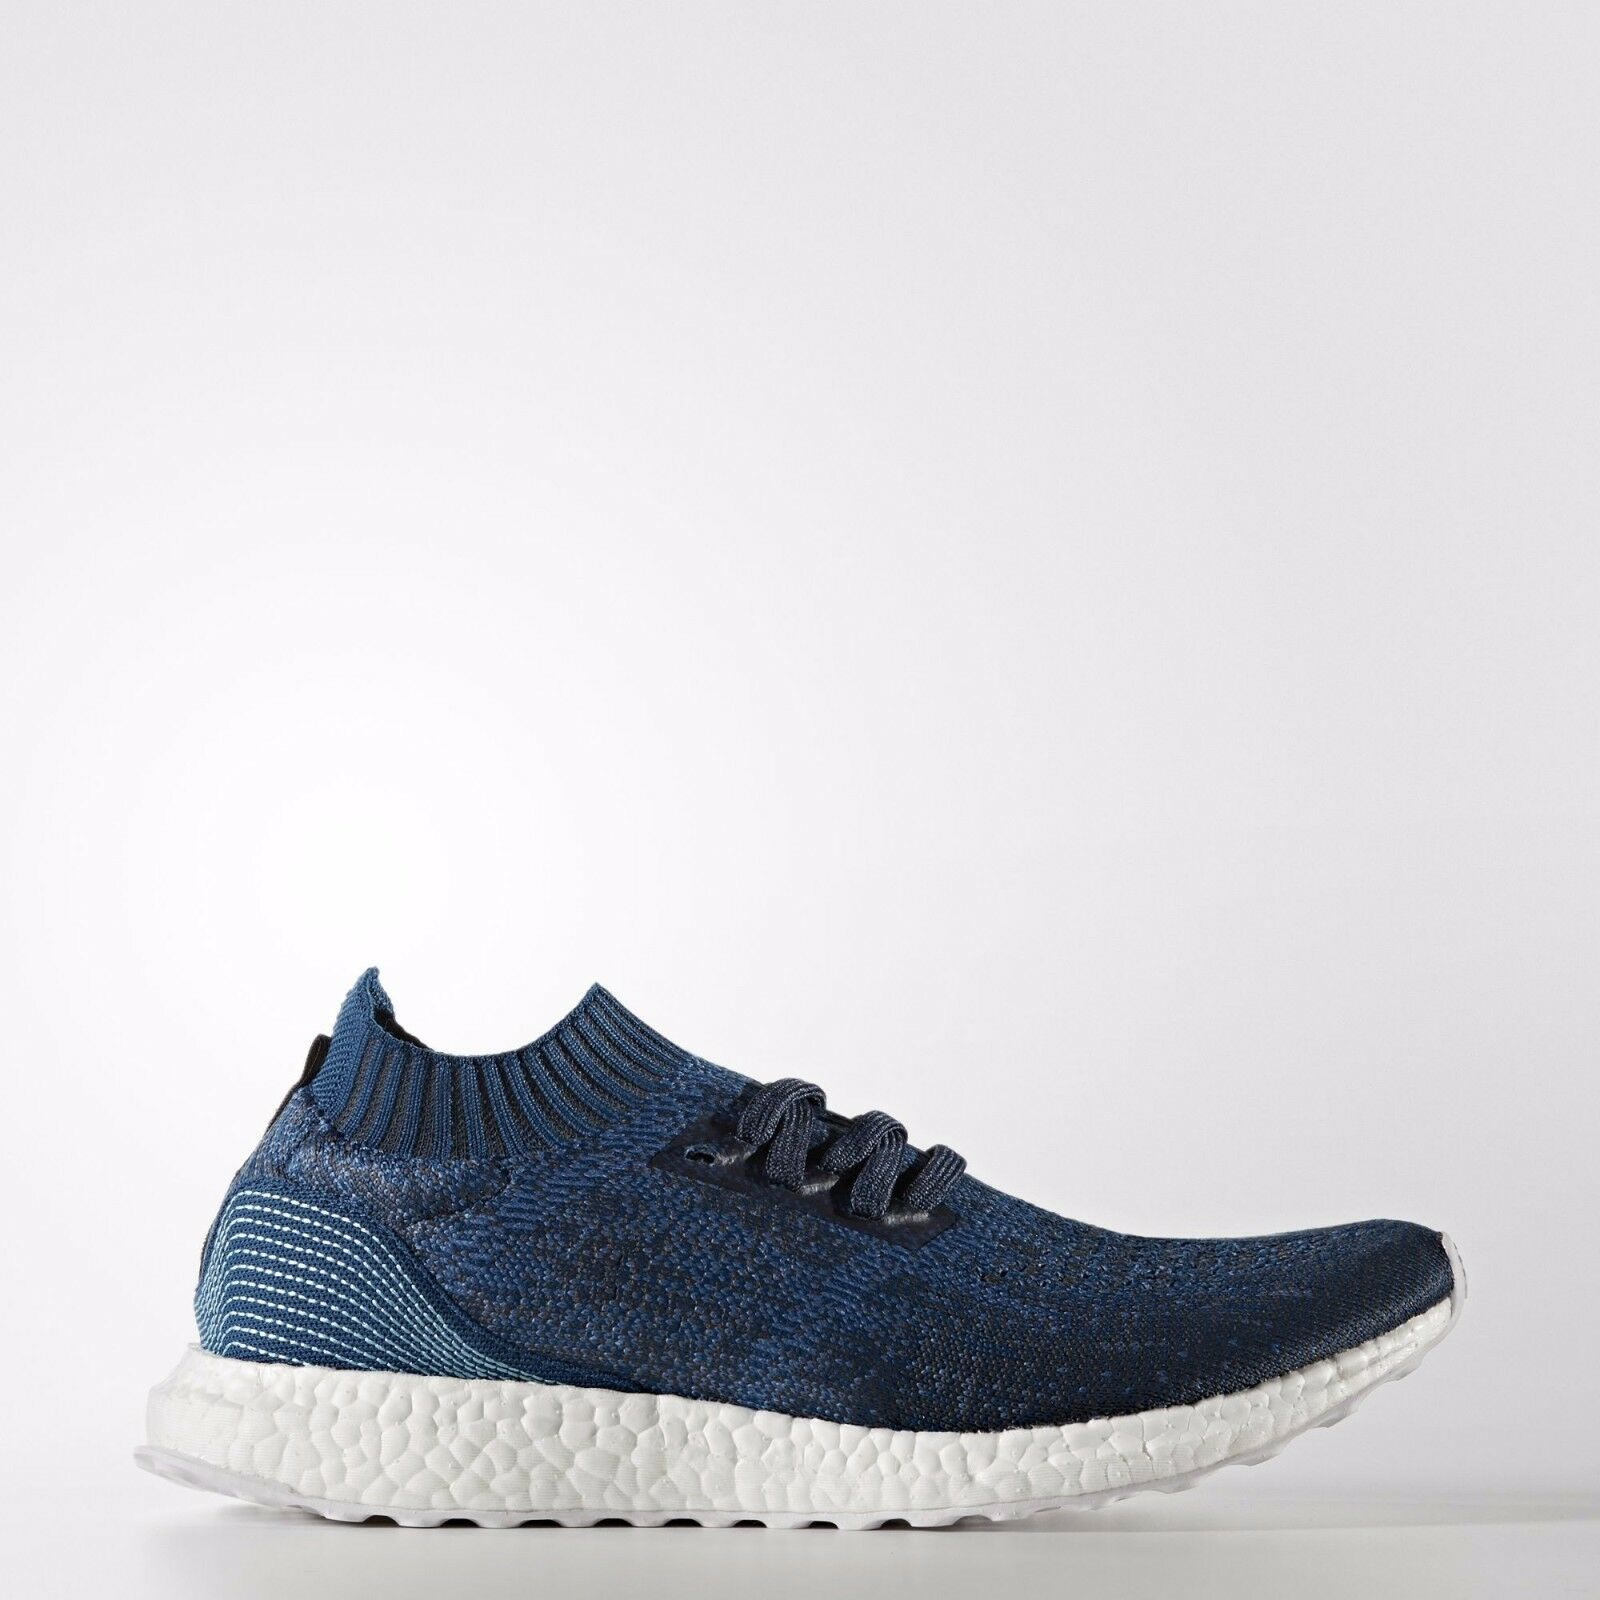 Adidas + Parley ULTRABOOST Uncaged 10 shoes - Size 10 Uncaged e39189